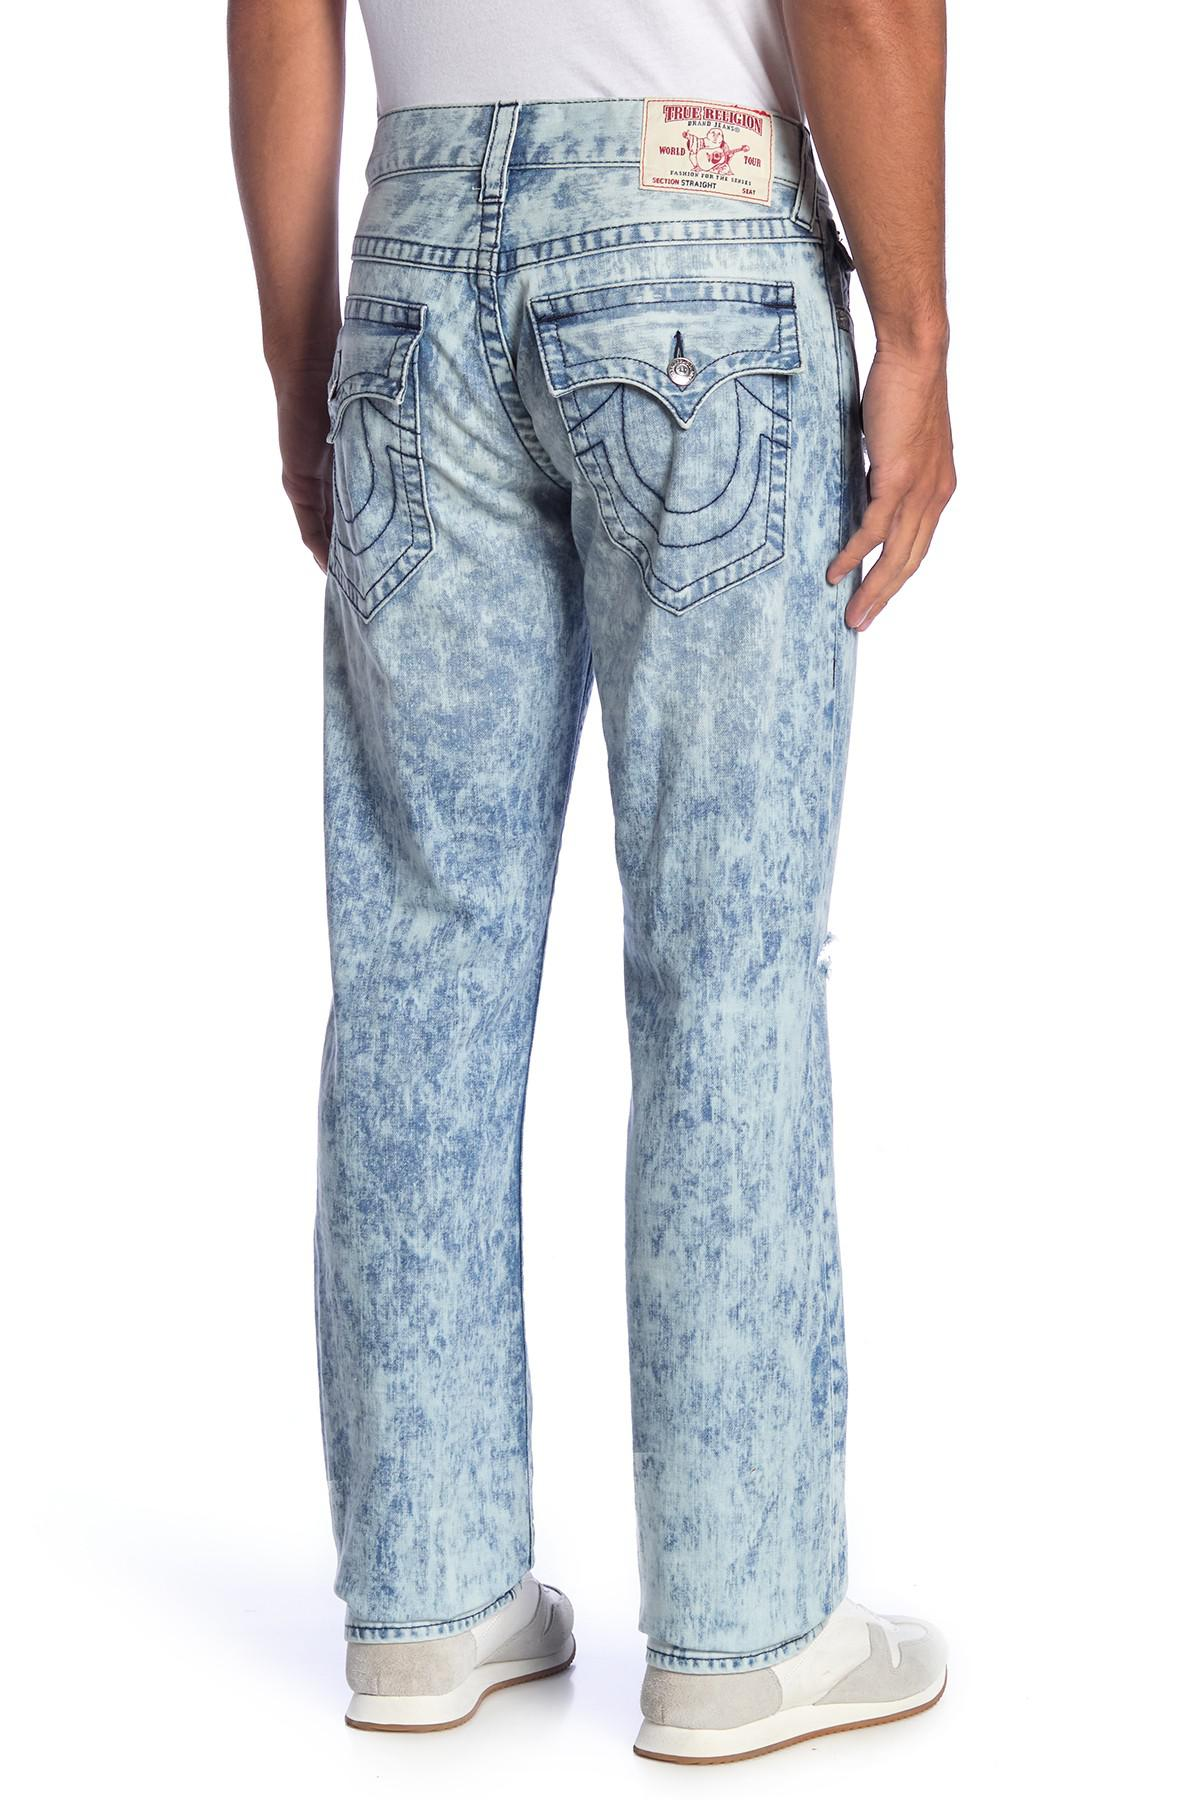 02bd88c88 True Religion - Blue Distressed Faded Straight Leg Jeans for Men - Lyst.  View fullscreen